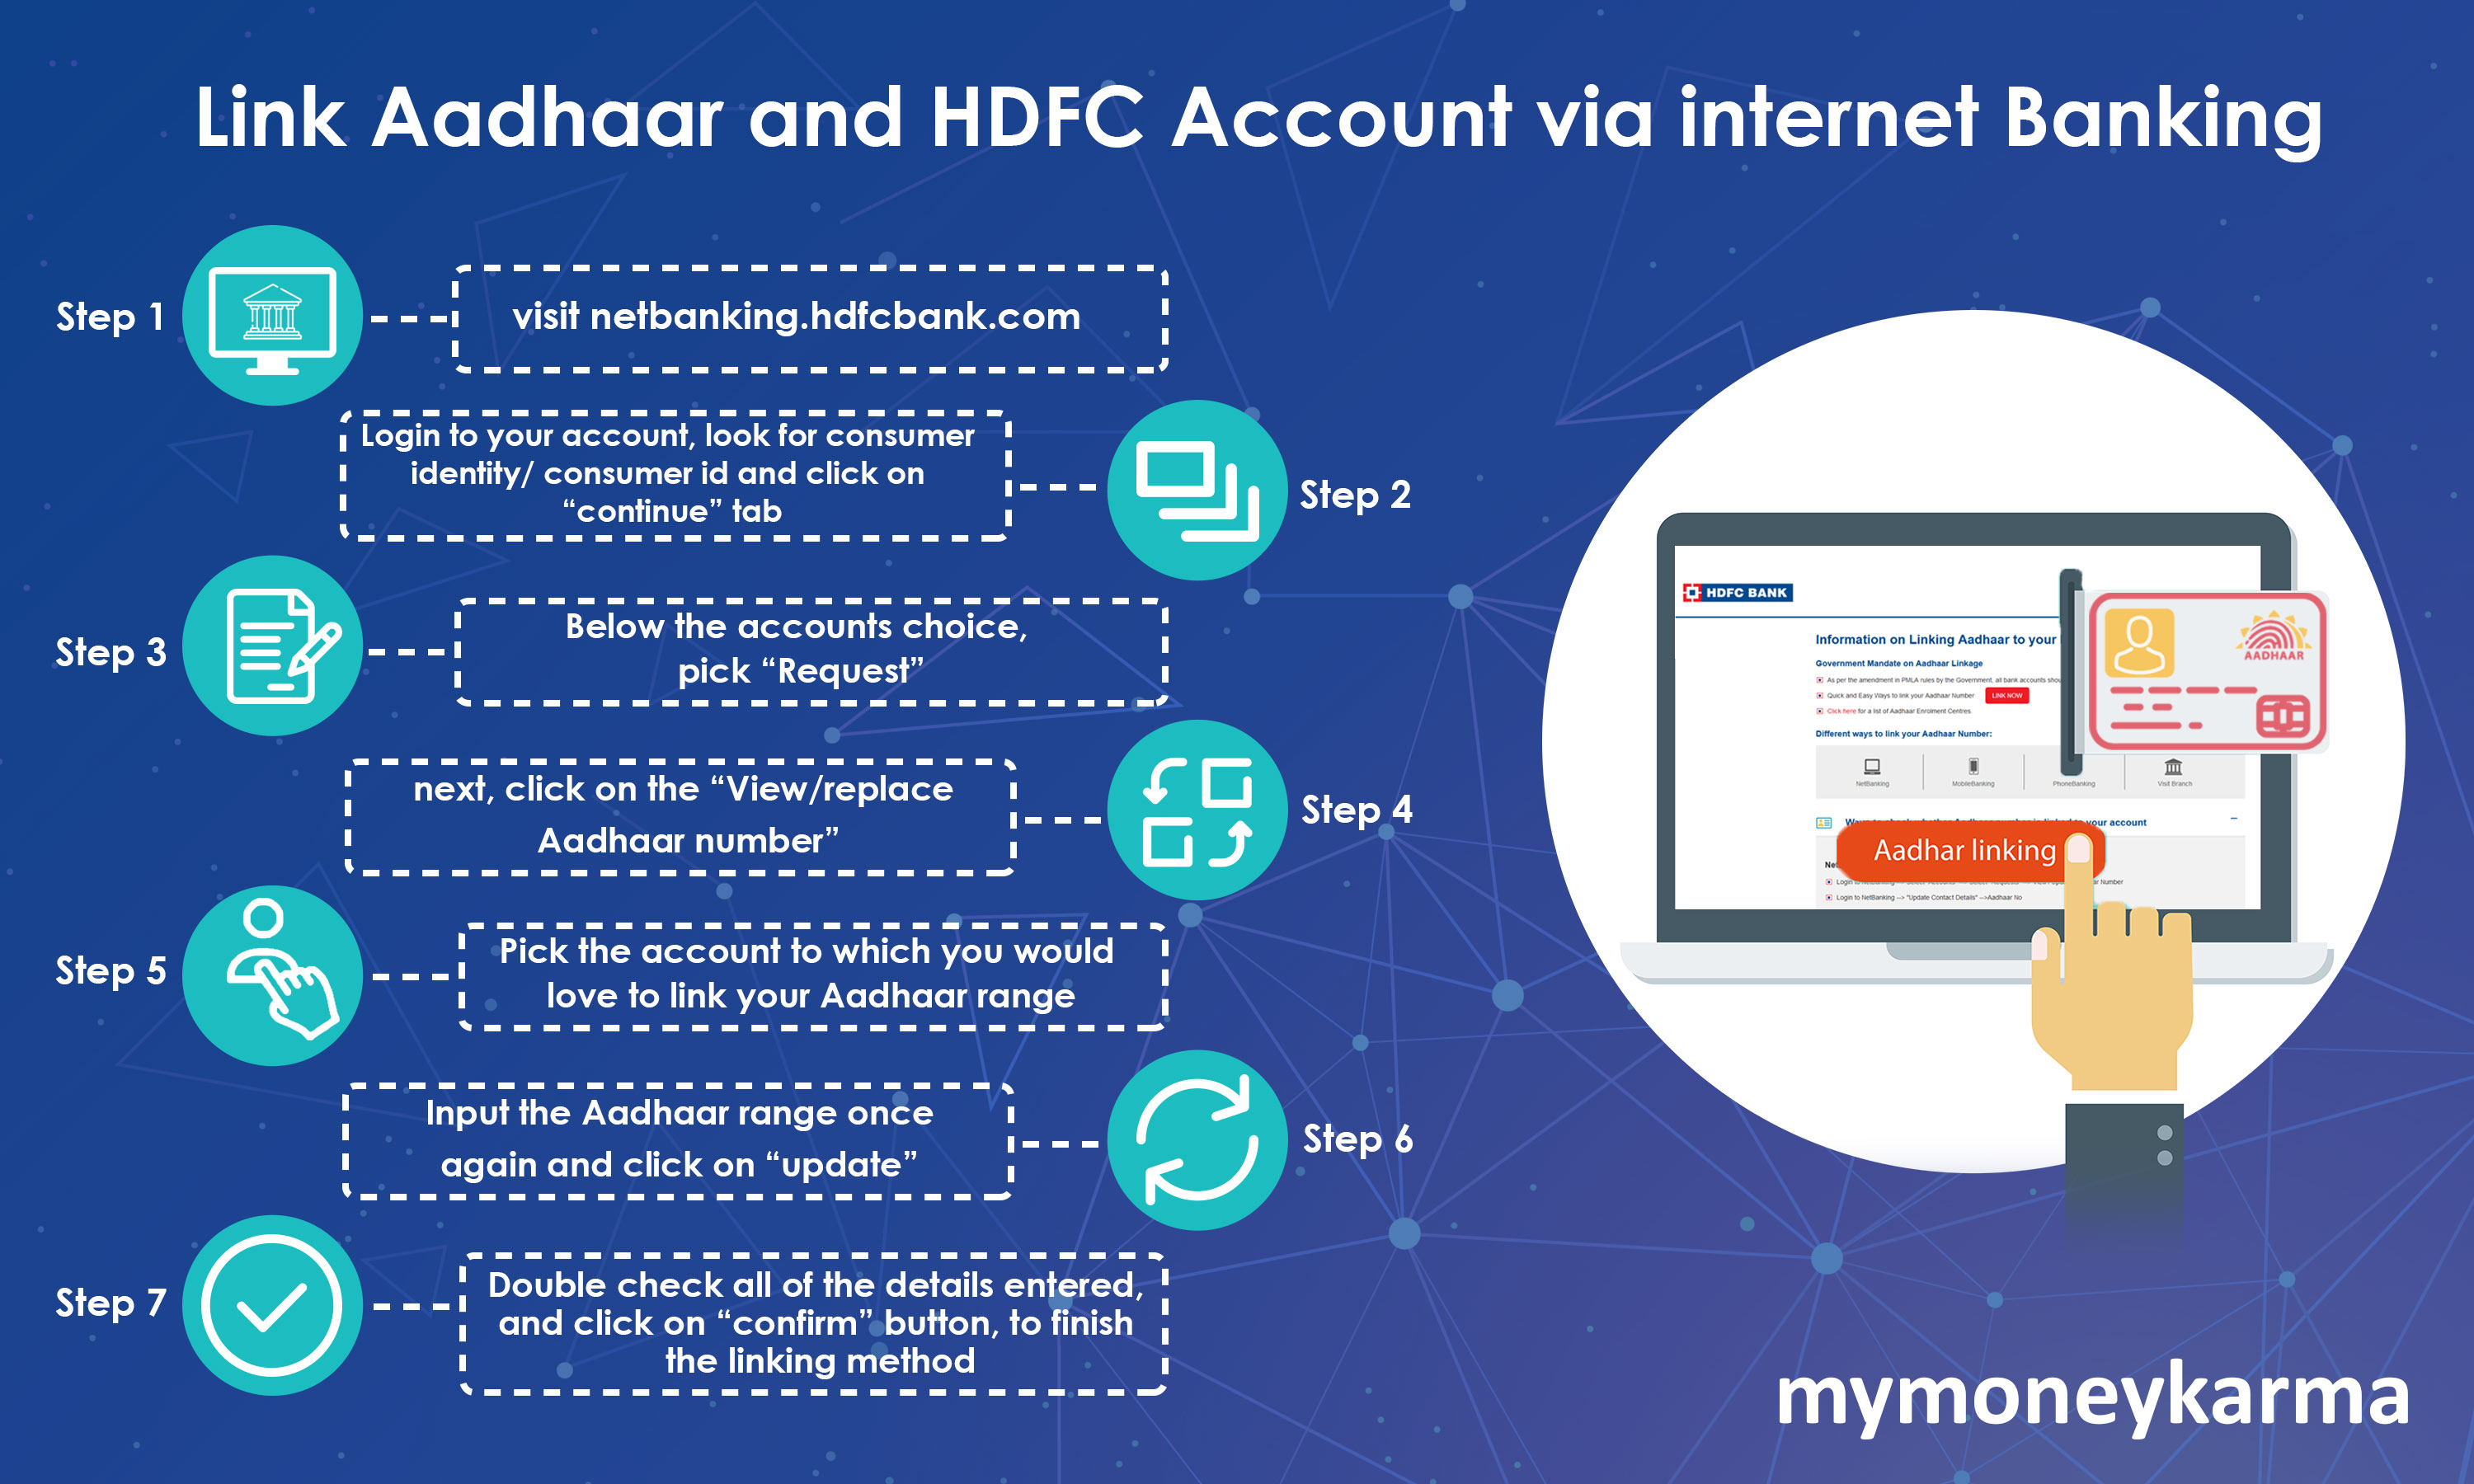 "Step 1: visit netbanking.hdfcbank.com                         Step 2: Login to your account, look for consumer identity/consumer id and click on ""continue"" tab                         Step 3: below the accounts choice, pick ""Request""                         Step 4: next, click on the ""View/replace Aadhaar number""                         Step 5: pick the account to which you would love to link your Aadhaar range                         Step 6: input the Aadhaar range once again and click on ""update""                         Step 7: Double check all of the details entered, and click on ""confirm"" button, to finish the linking method"